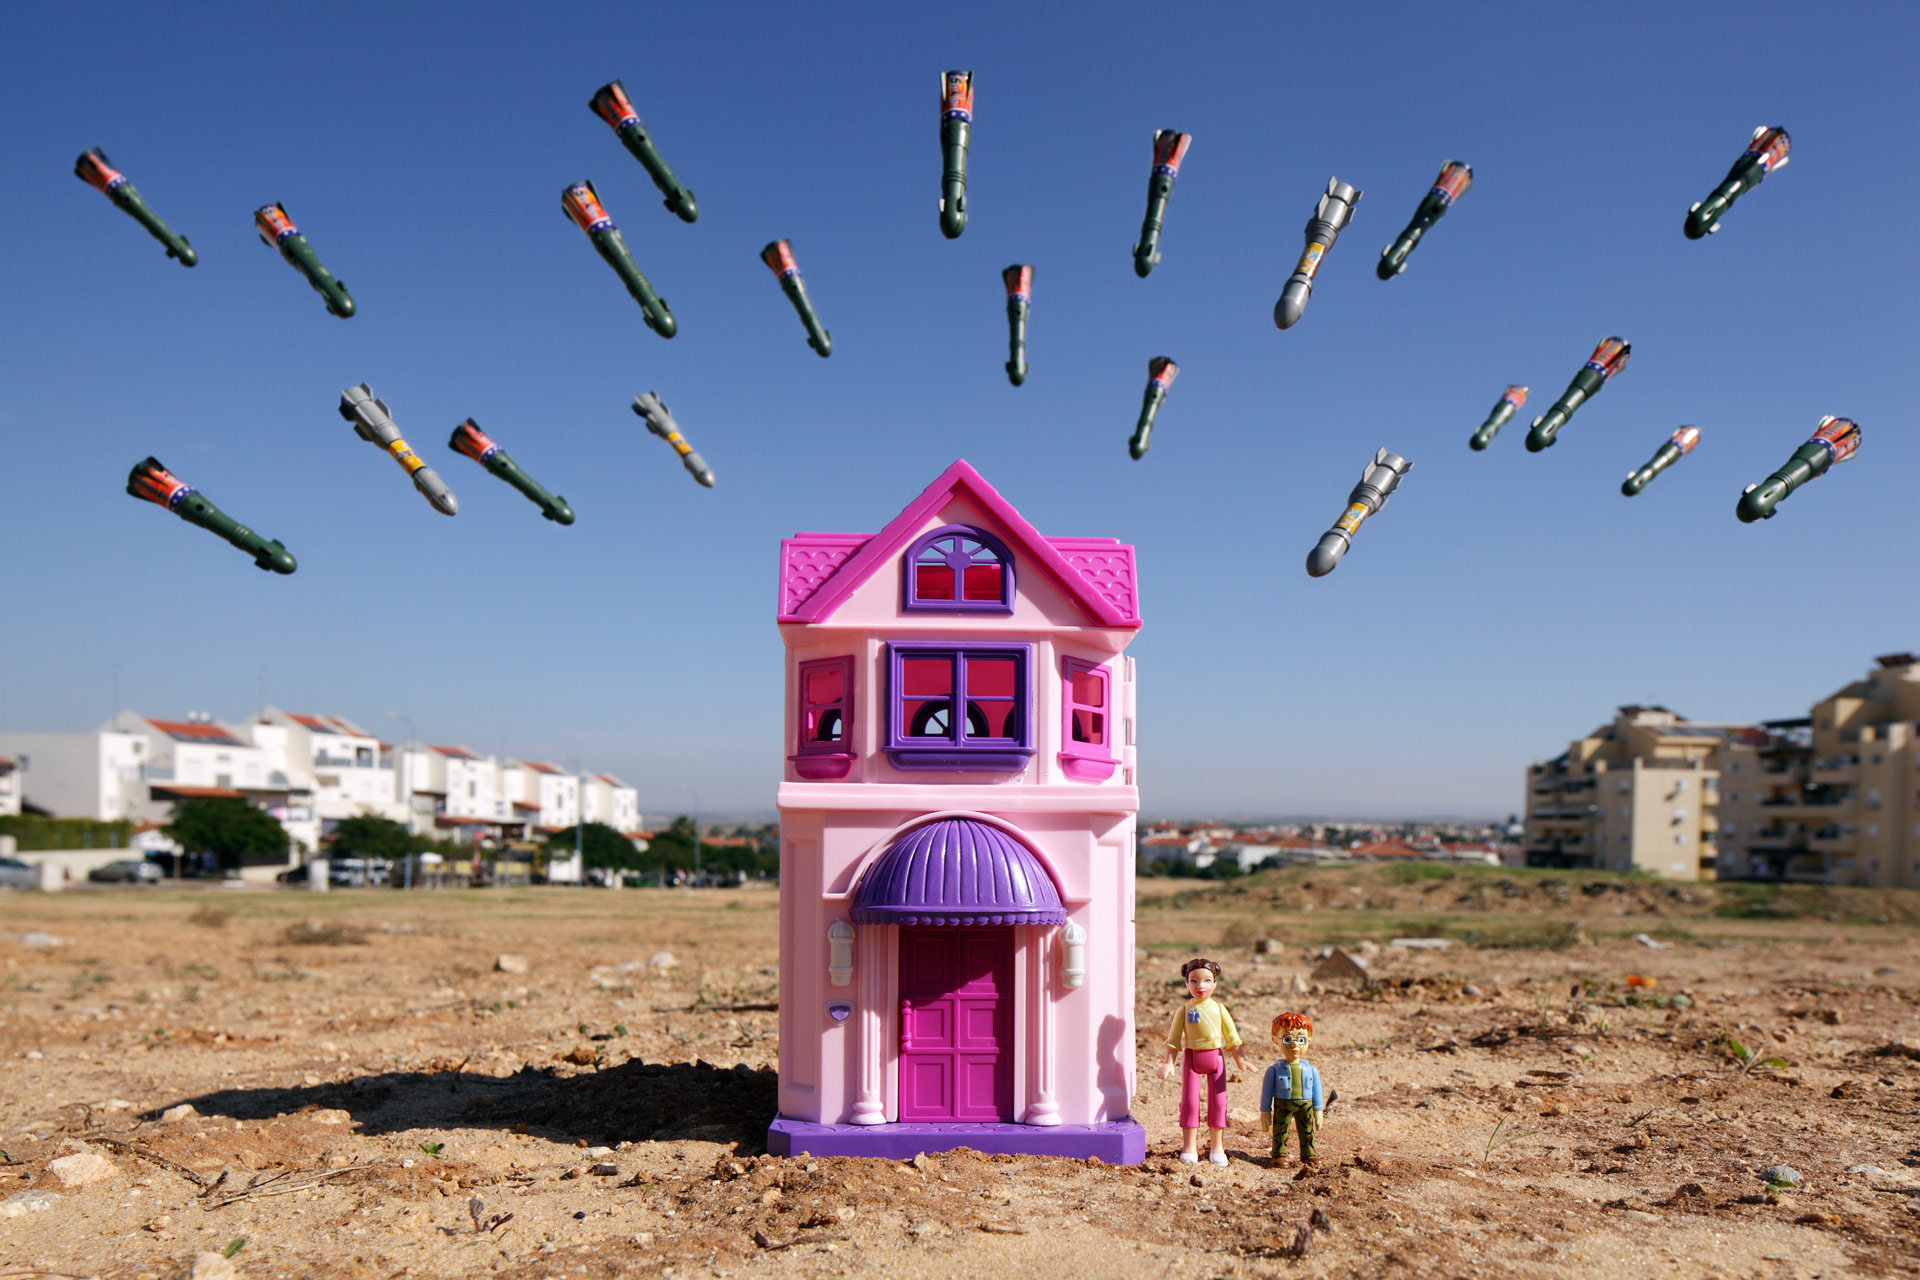 'War-Toys' exhibition spotlights the reality of children living in armed conflict